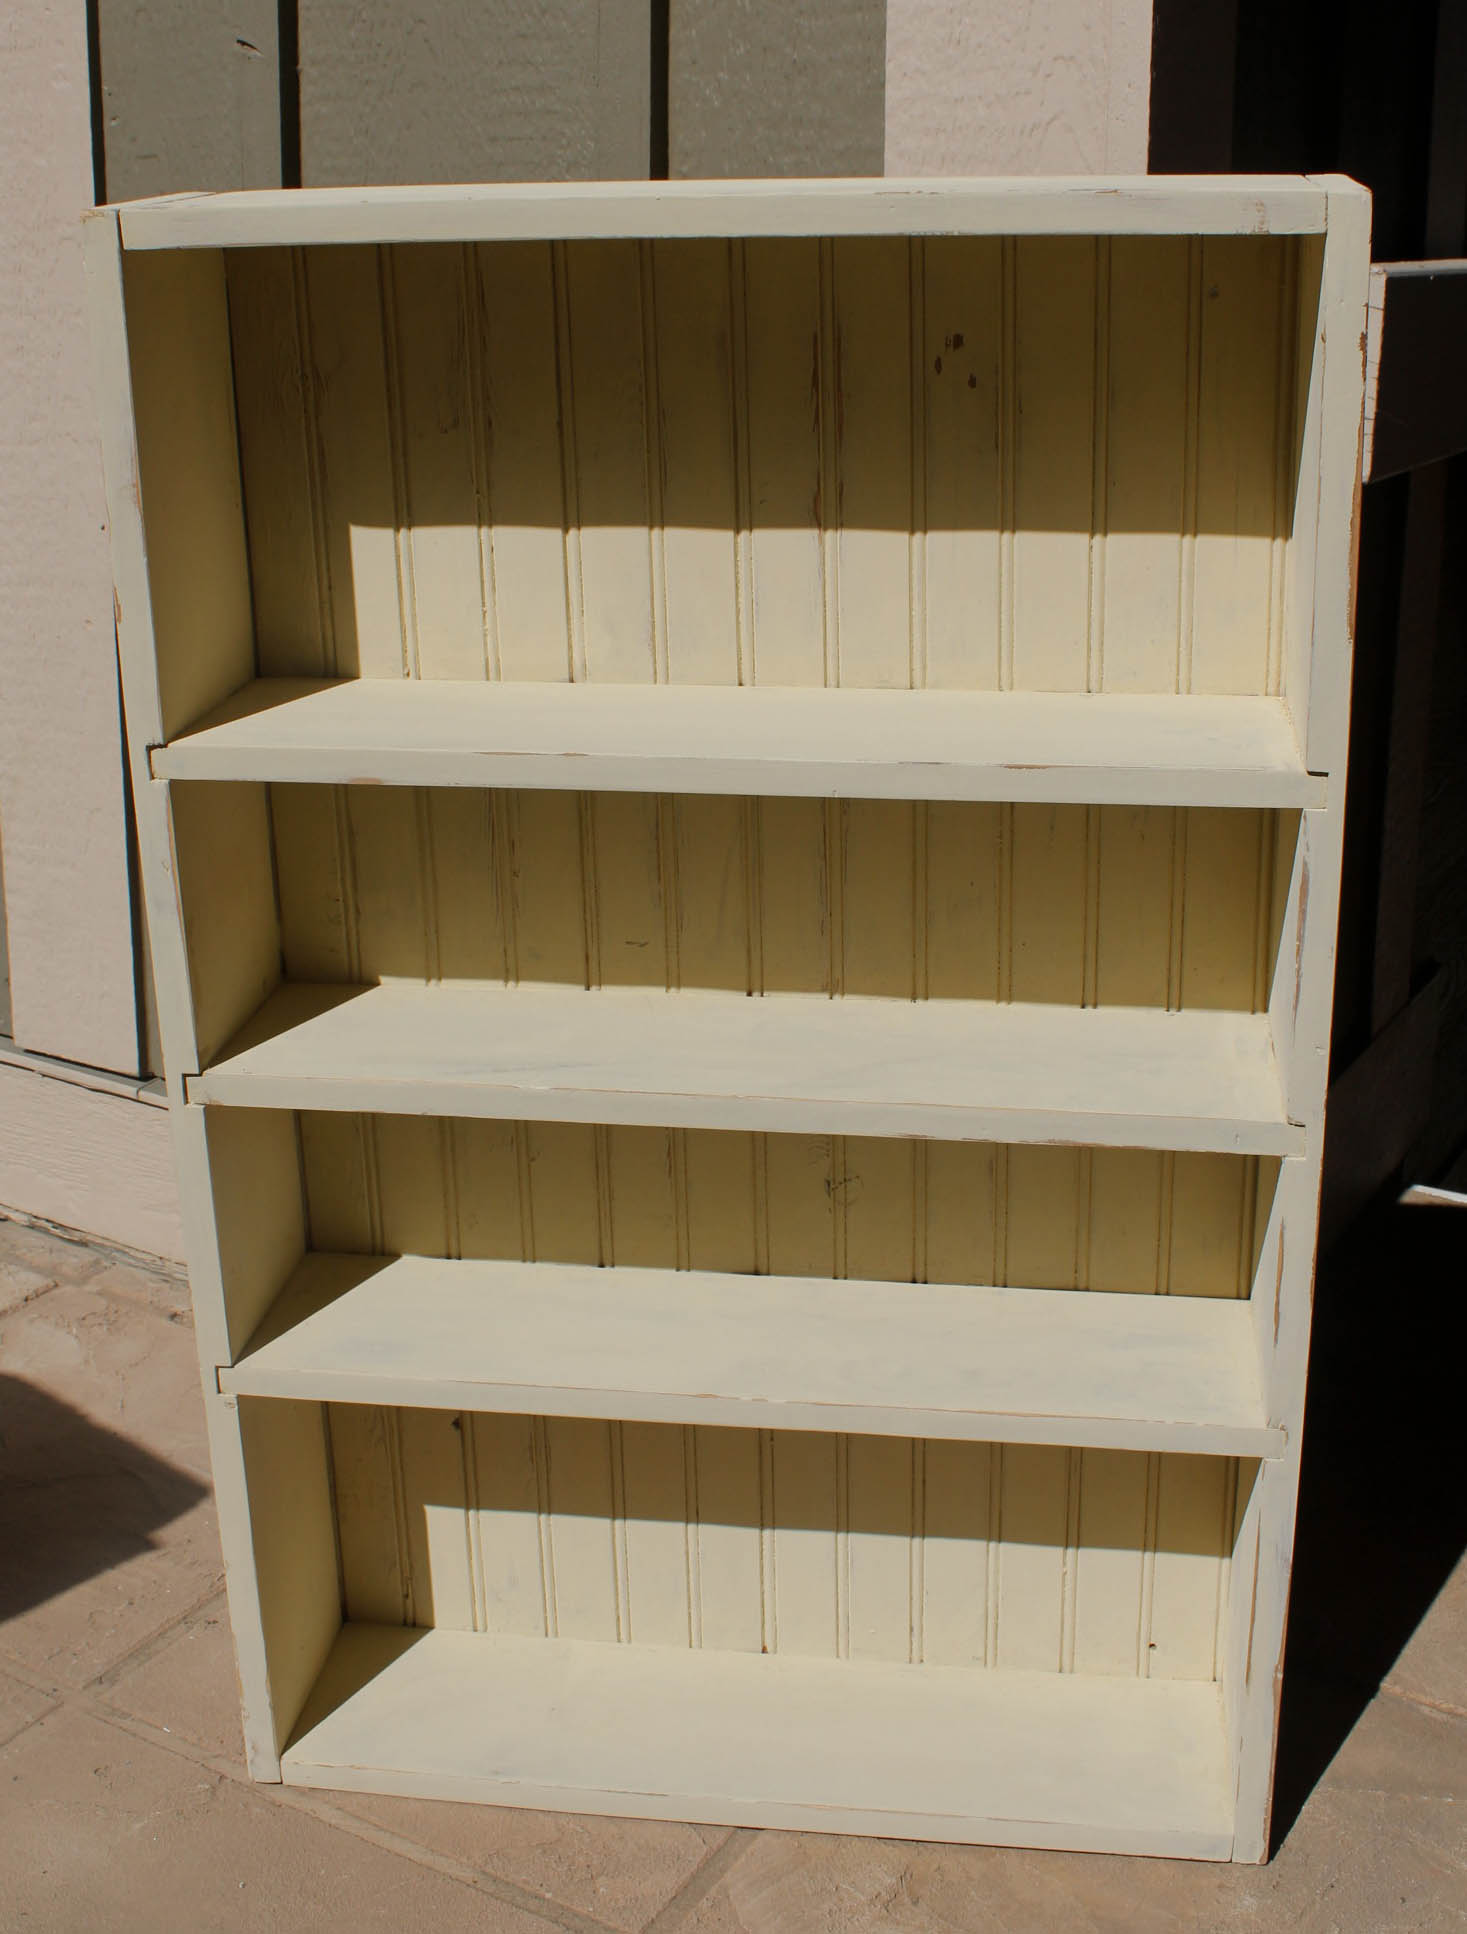 I Painted The Cabinet With Two Coats Of A Buttermilk Colored Milk Paint And  Then Sanded It.